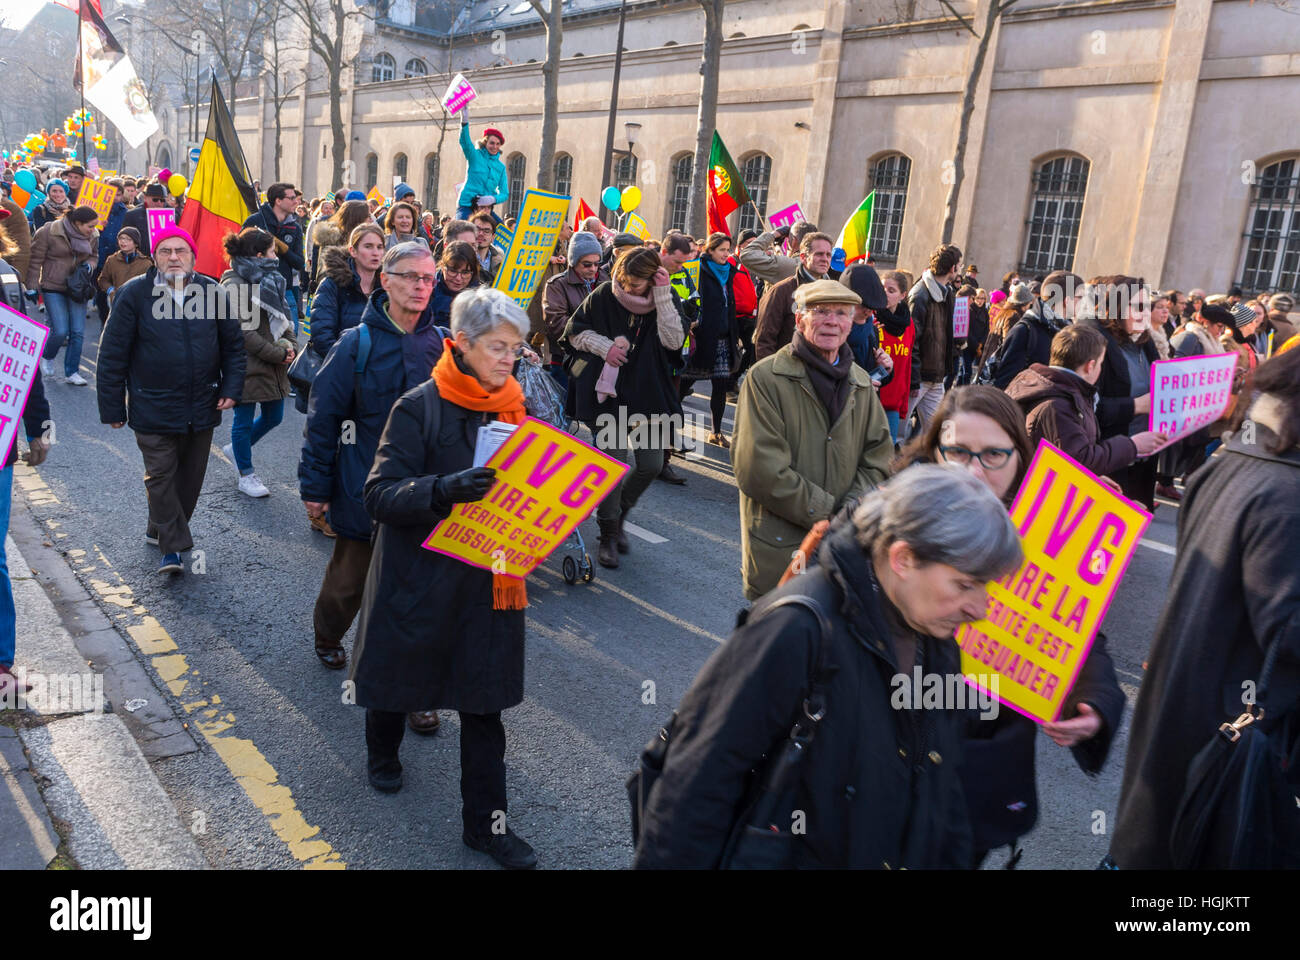 Crowd of French People, Marching in Protest Against Legal Abortion, 'Marche Pour la Vie'      'Tens - Stock Image